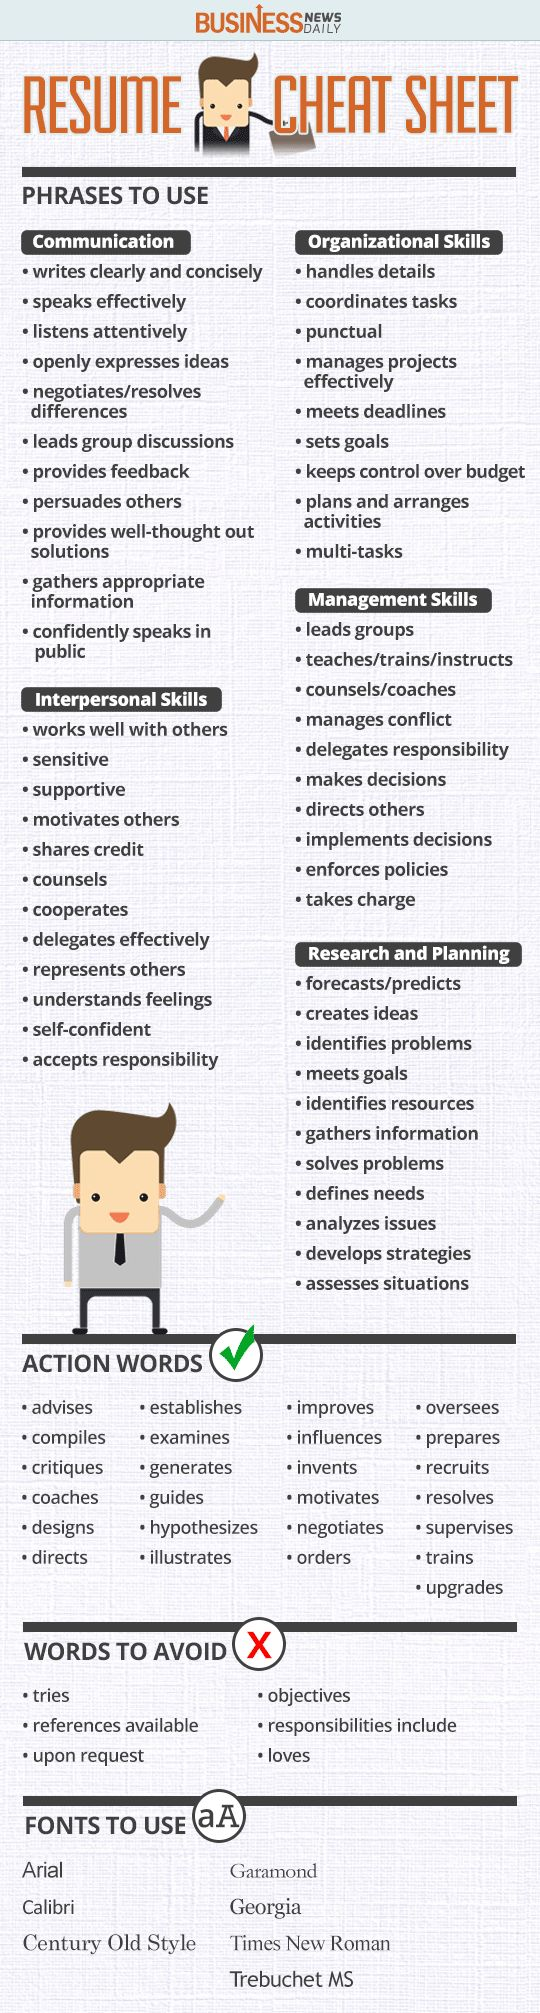 Opposenewapstandardsus  Seductive  Ideas About Resume On Pinterest  Cv Format Resume Cv And  With Excellent Resume Cheat Sheet Infographic Andrews Almost Done With A Complete Unit On Employment Which With Extraordinary My Perfect Resume Customer Service Number Also Resume For Executive Assistant In Addition Free Resume Builder App And Office Assistant Resume Sample As Well As Professor Resume Additionally Program Analyst Resume From Pinterestcom With Opposenewapstandardsus  Excellent  Ideas About Resume On Pinterest  Cv Format Resume Cv And  With Extraordinary Resume Cheat Sheet Infographic Andrews Almost Done With A Complete Unit On Employment Which And Seductive My Perfect Resume Customer Service Number Also Resume For Executive Assistant In Addition Free Resume Builder App From Pinterestcom